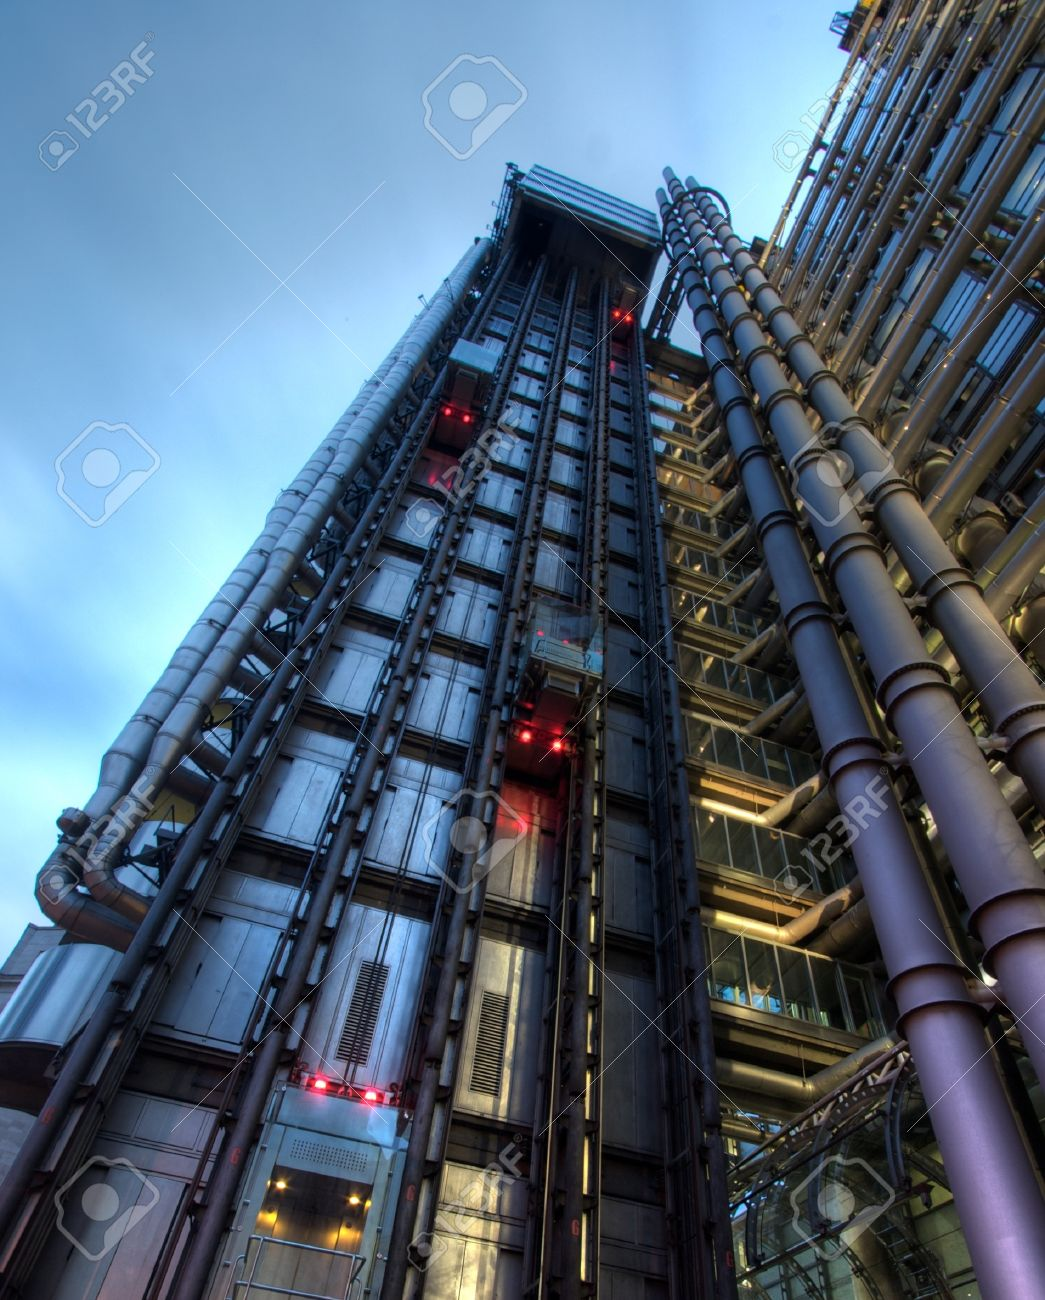 Lifts on the side of Lloyds building, London, England Stock Photo - 4397396